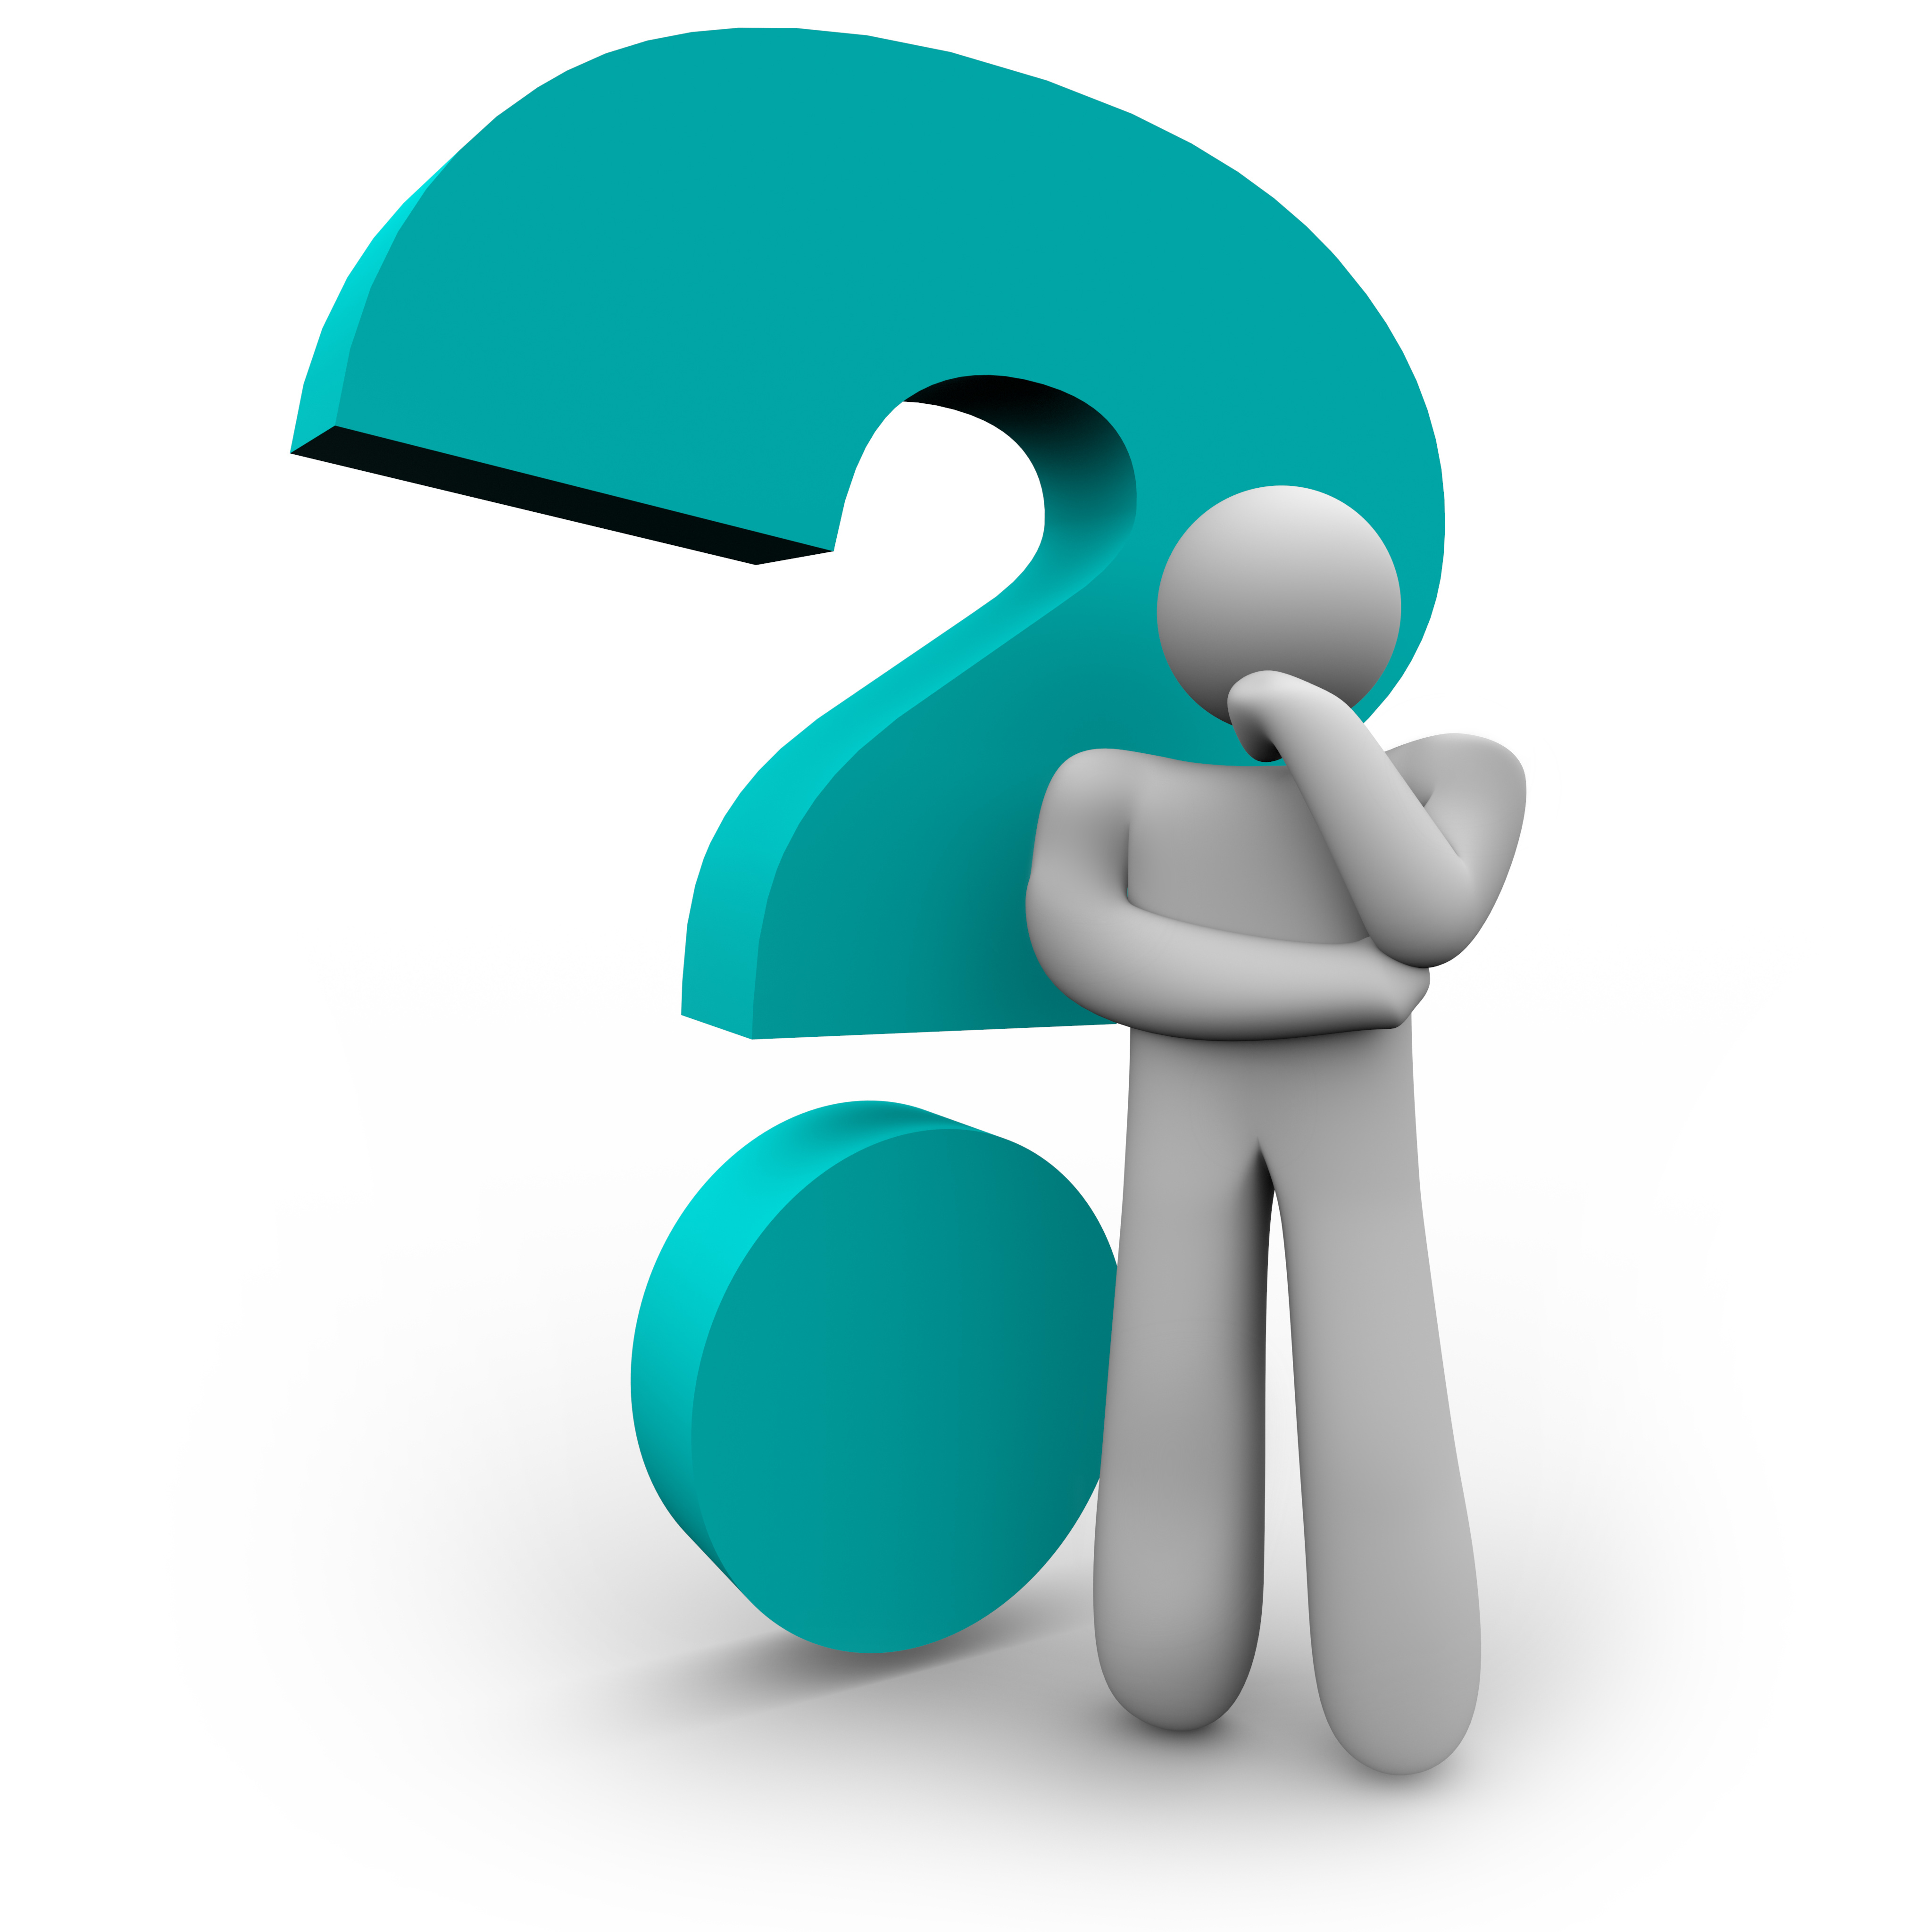 the questions Asking questions can also give you the opportunity to further highlight some of your qualities, skills, and experience asking very specific questions when you respond will allow you to impress your potential employer with your knowledge and interest in the industry while also determining if this is the right job for you.